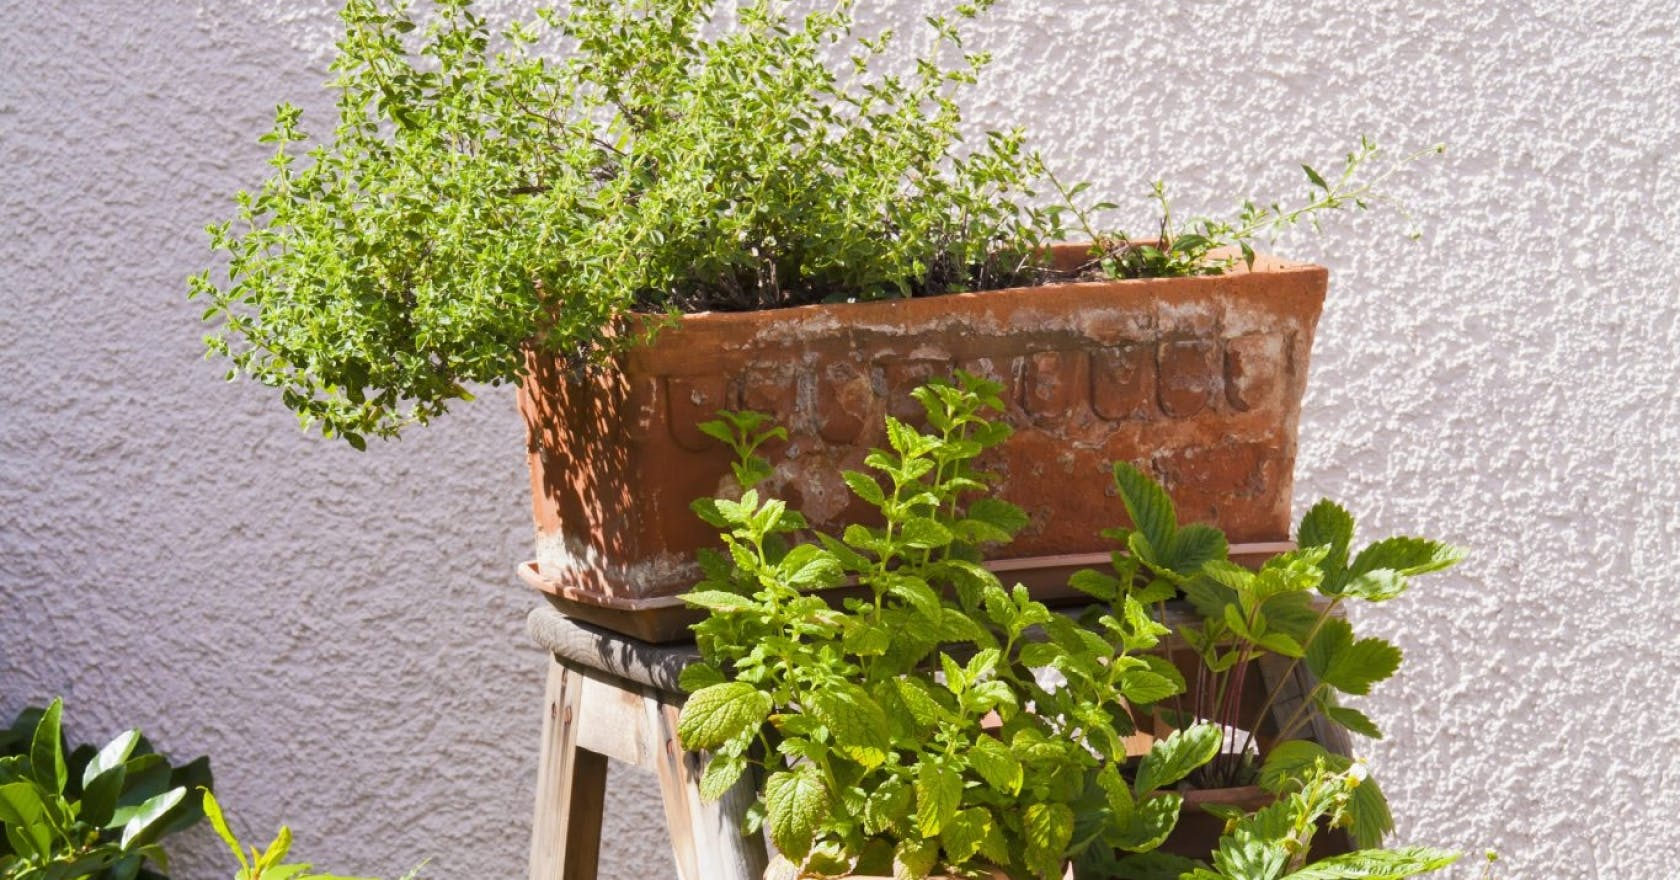 How to grow your own vegetables and herbs at home